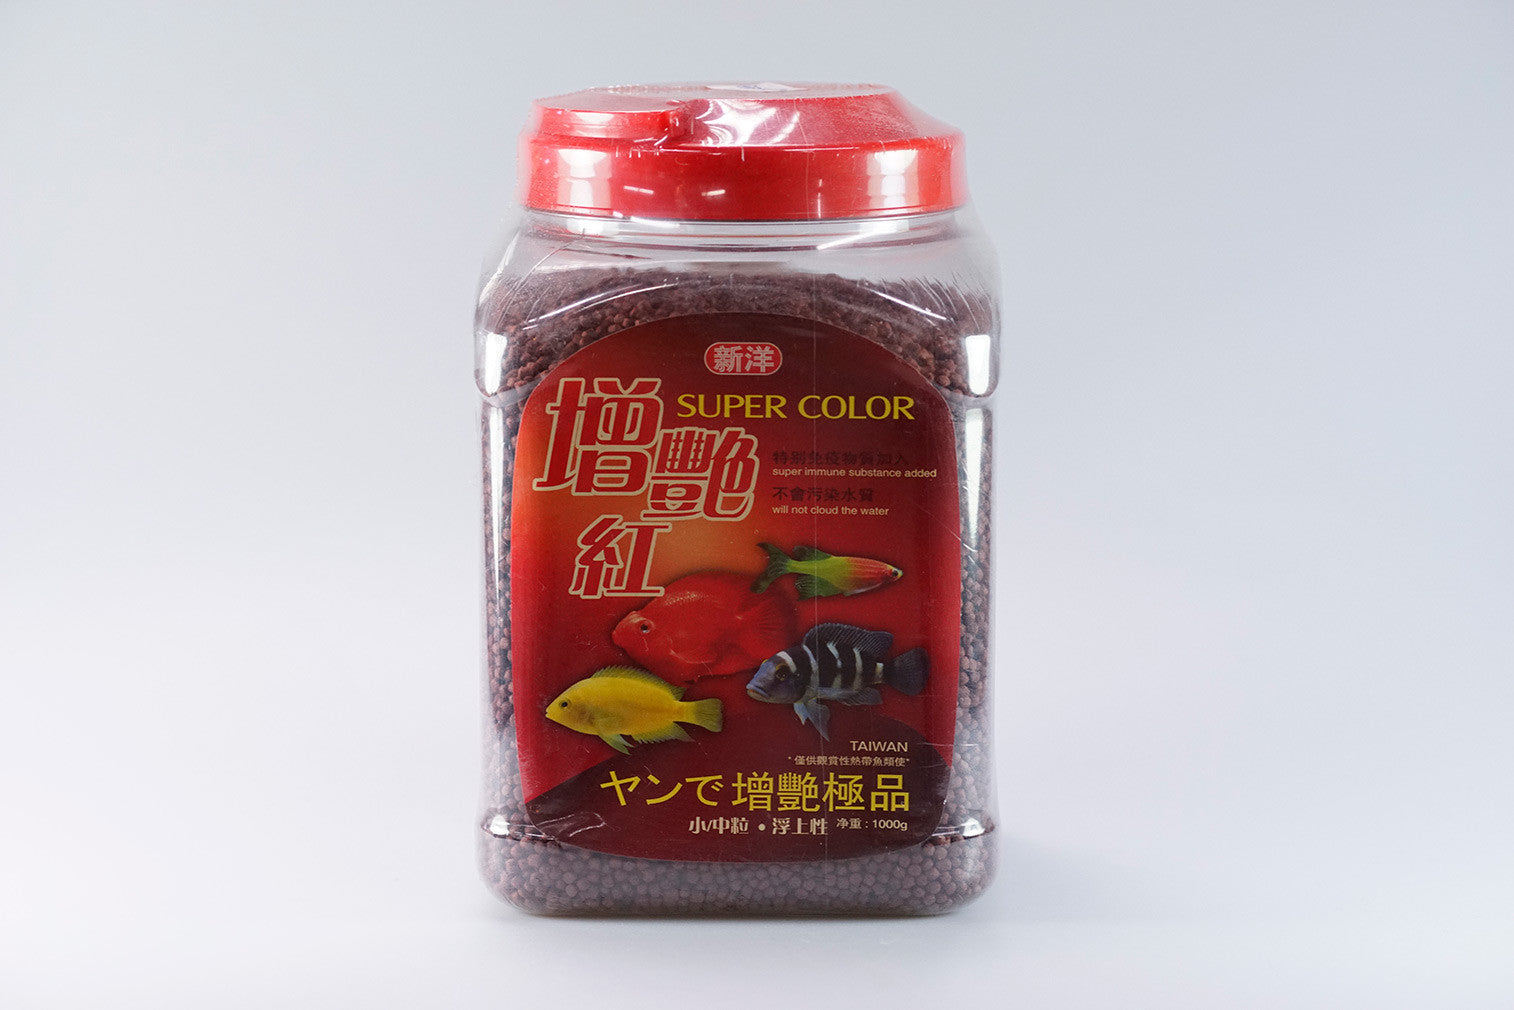 Xin Yang Super Color fish food - 260g / 1000g